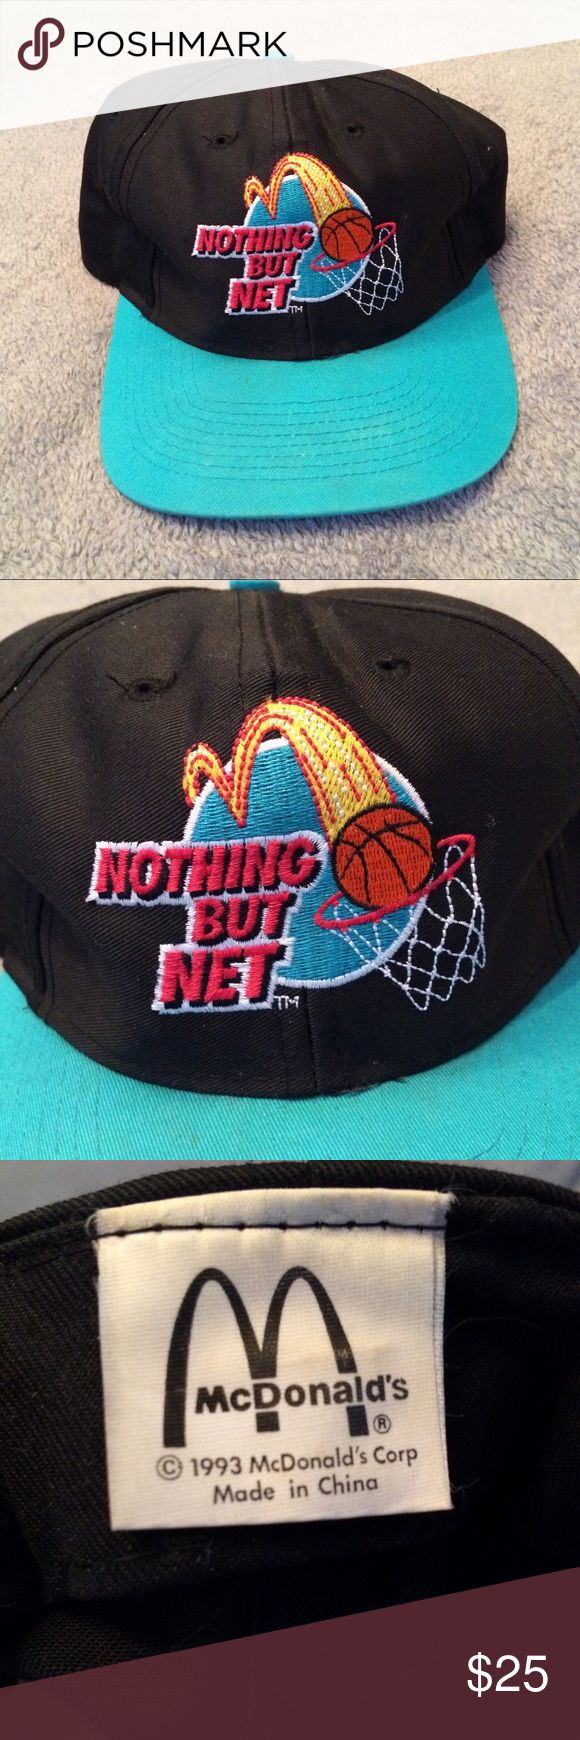 Vintage 1993 McDonalds nothing but net SnapBack Vintage McDonald's Accessories Hats